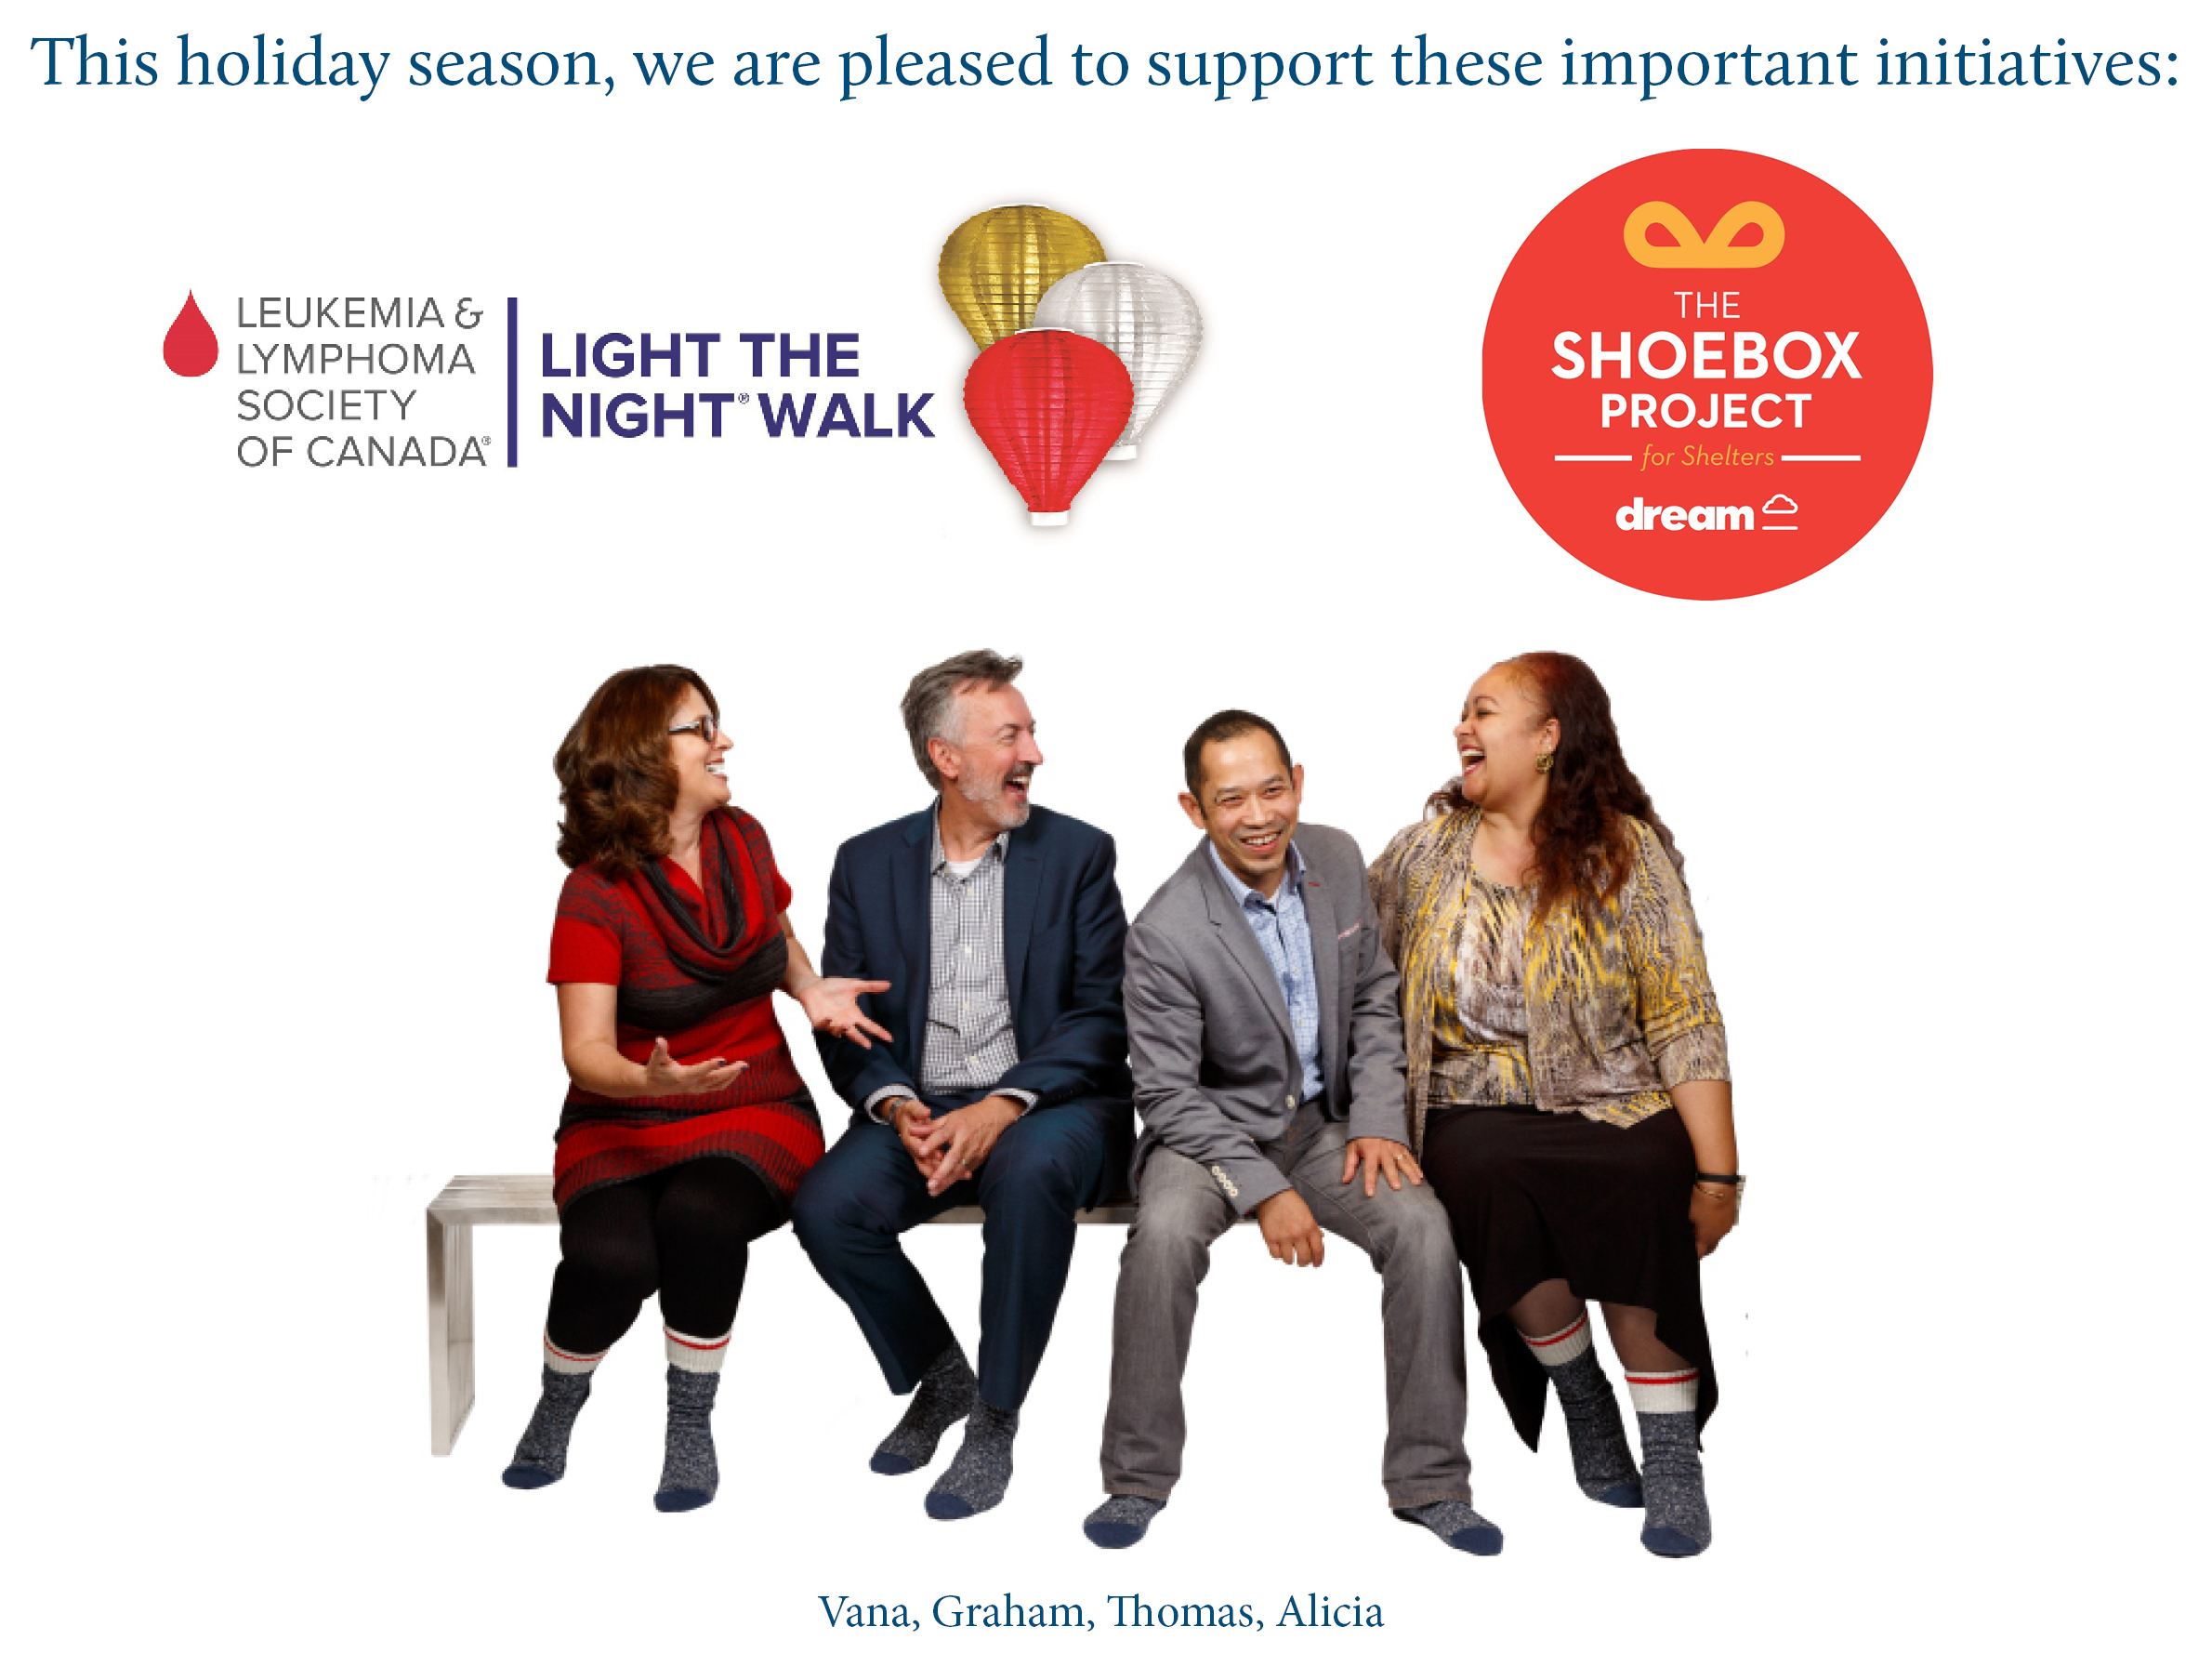 This year we are pleased to support these two charities: Light the Night Walk and the Shoebox Project